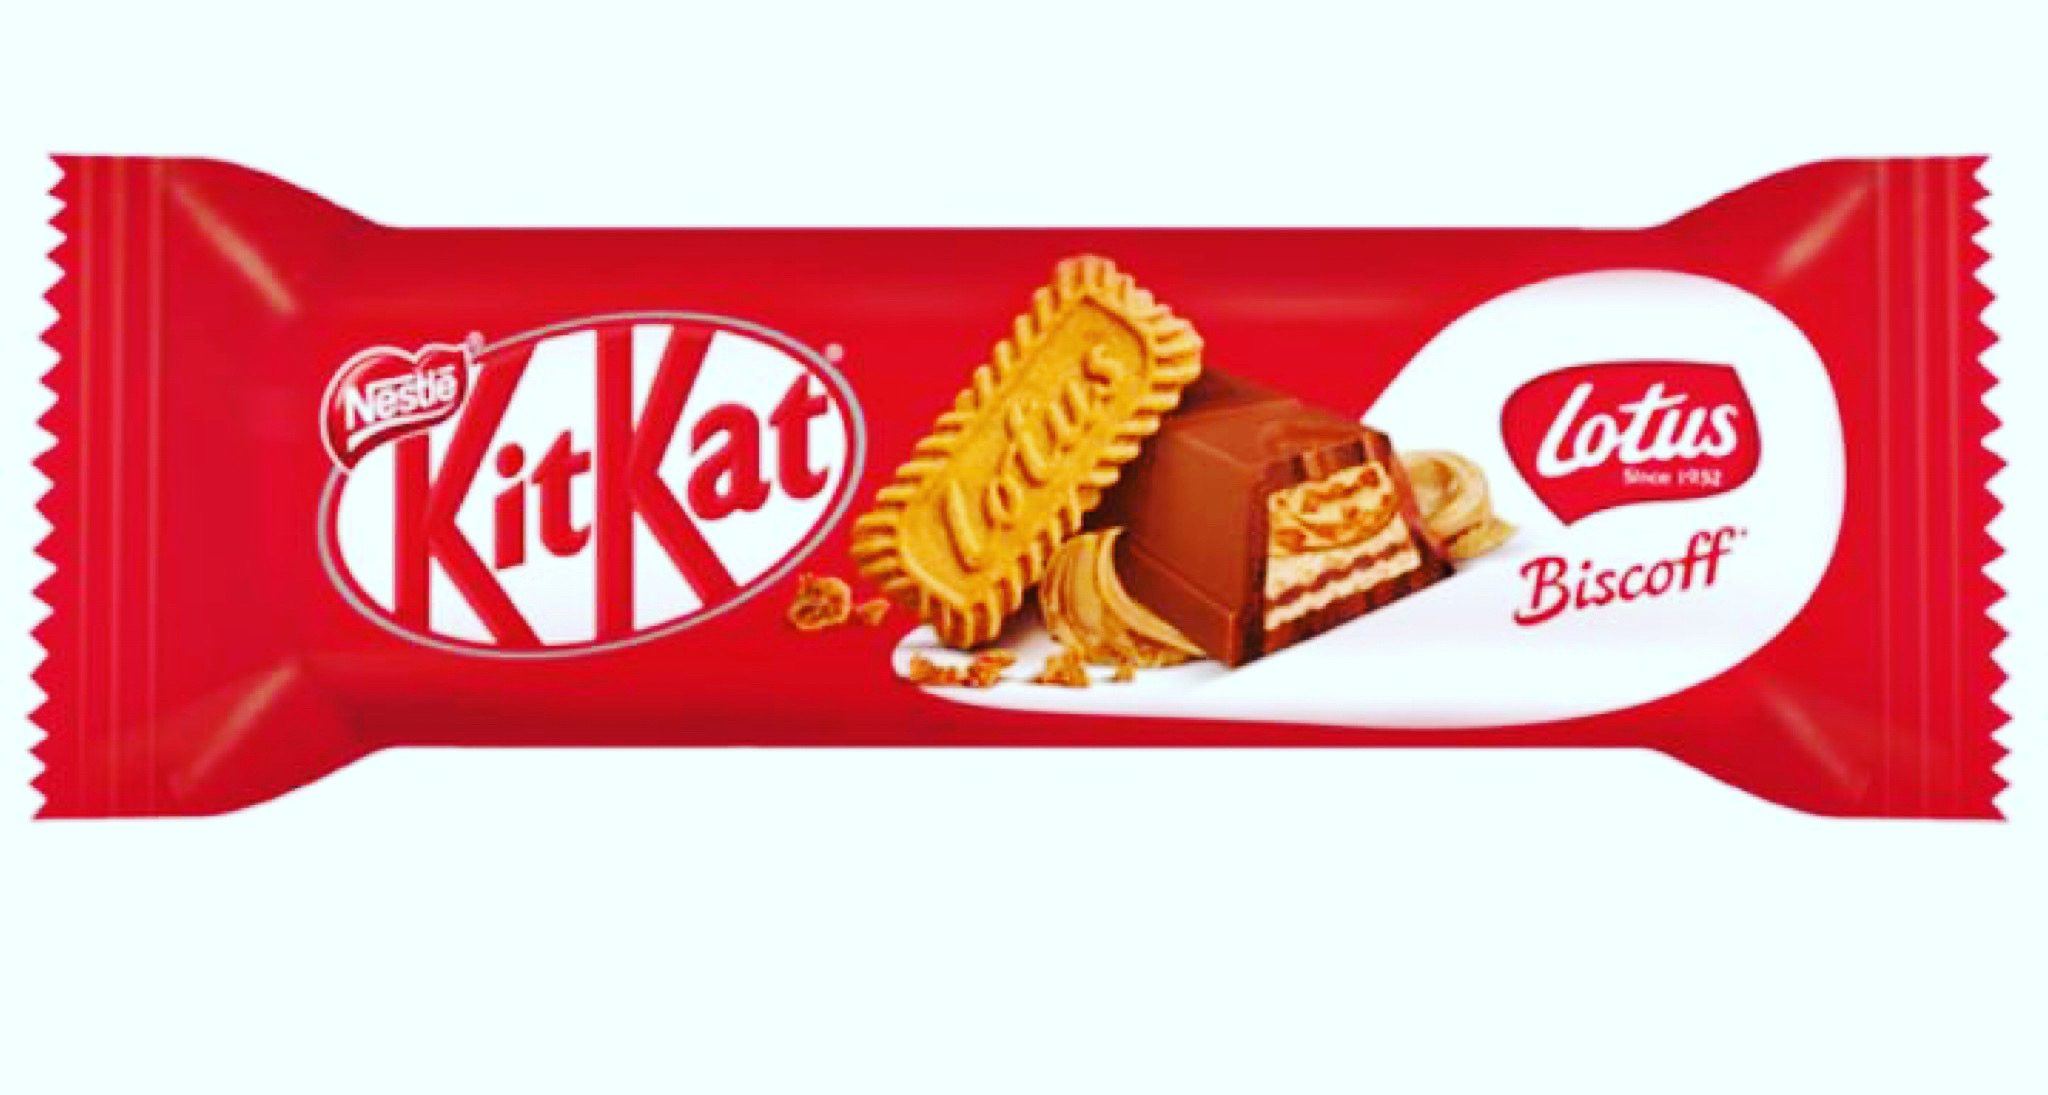 Mini Biscoff KitKats are available to buy in the UK and chocoholics say they're a 'dream come true'